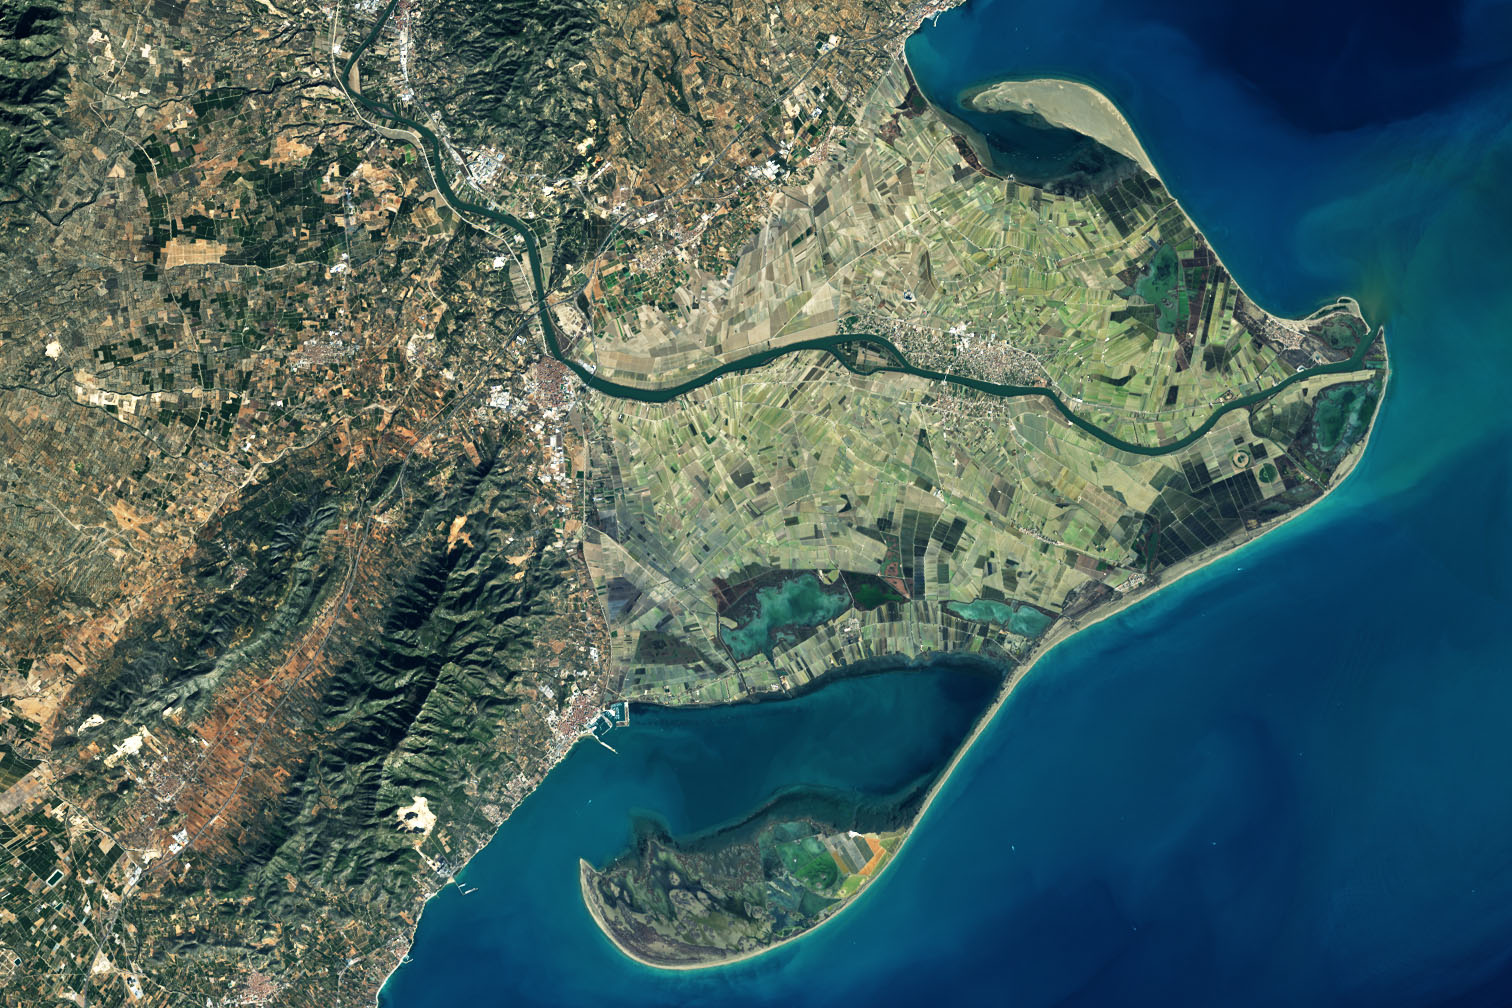 Today's Image of the Day comes from the NASA Earth Observatory and features a look at the Ebro River Delta along the Mediterranean coast.